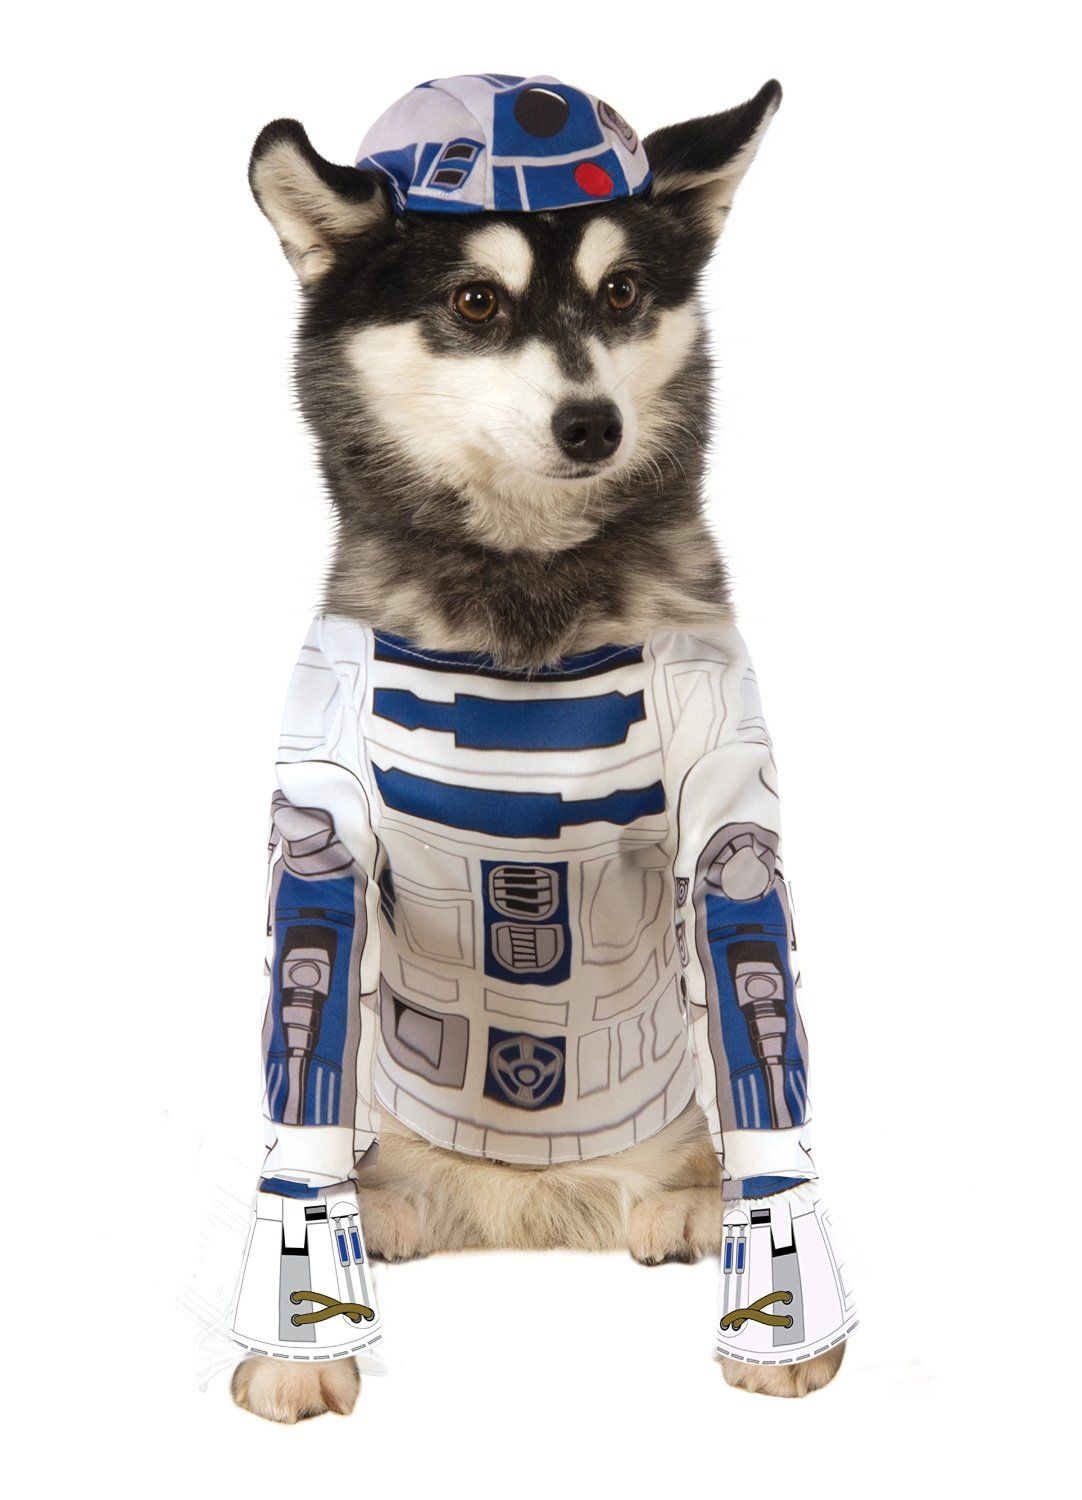 Amazon.com   Star Wars R2-D2 Pet Costume   Pet Supplies  e208649e4c6e